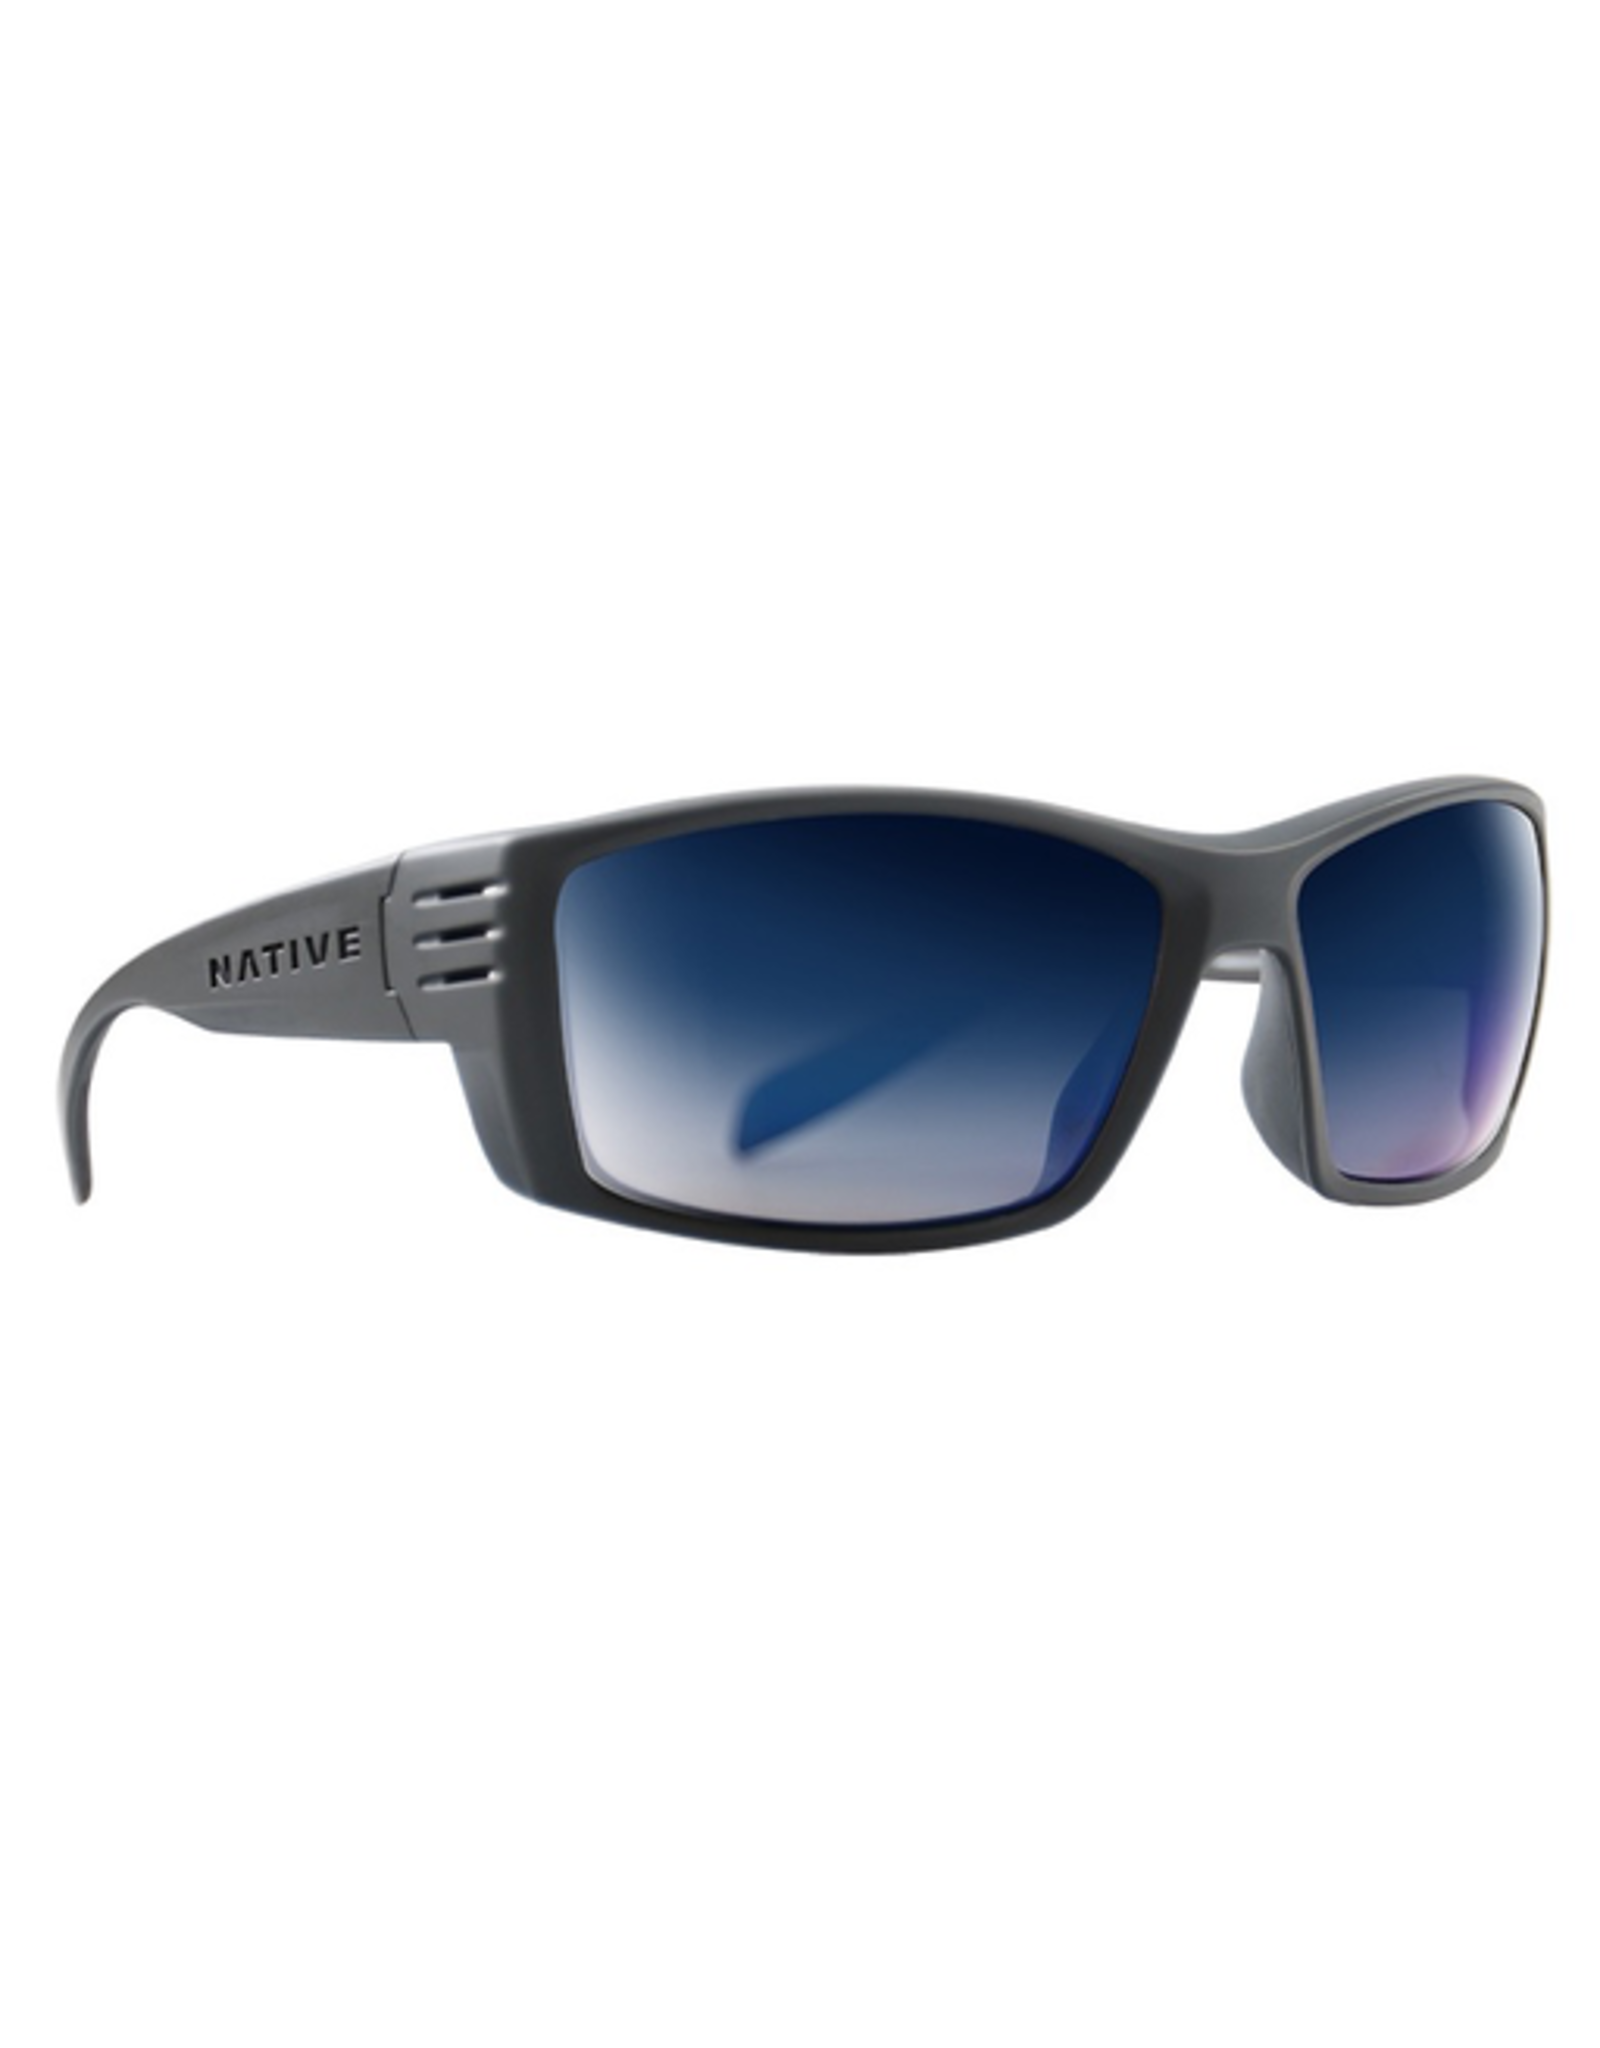 Native Eyewear Native Sunglasses Raghorn, Frame Granite, Lens Blue Reflex